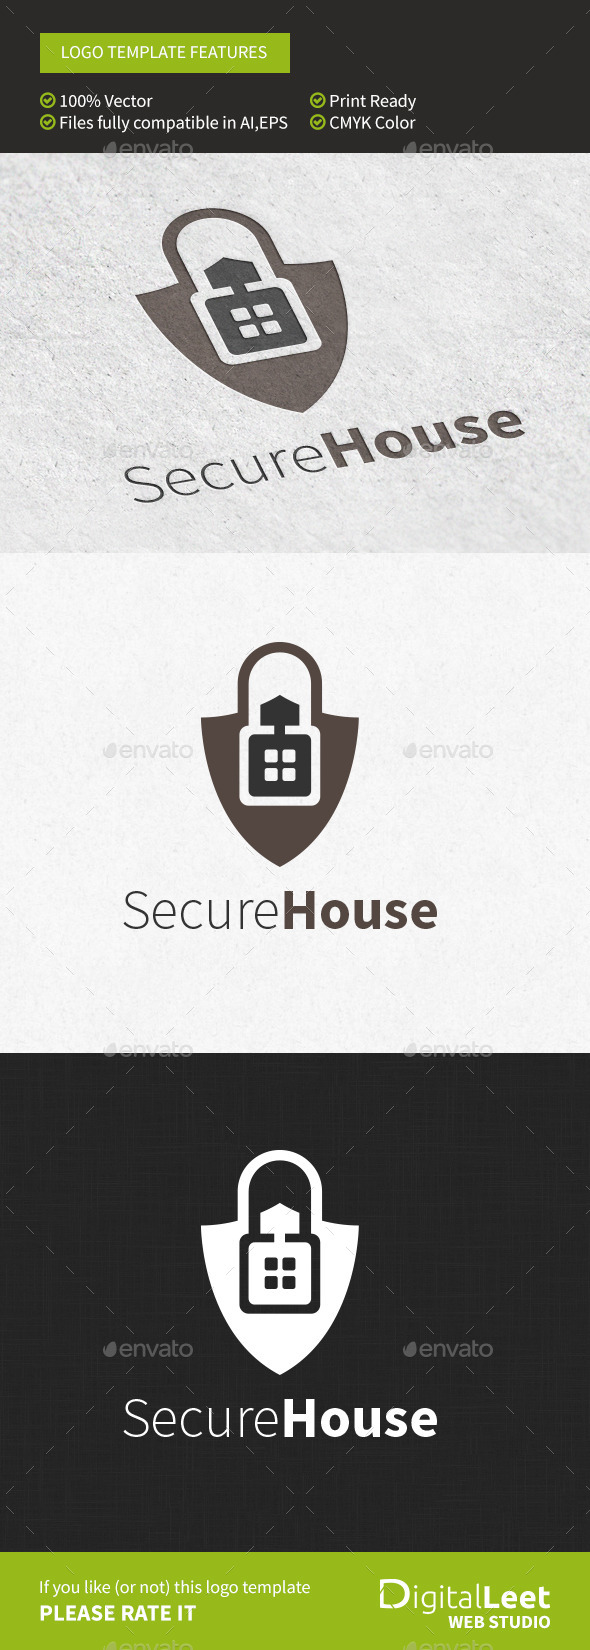 GraphicRiver Secure House Logo Template 8956114